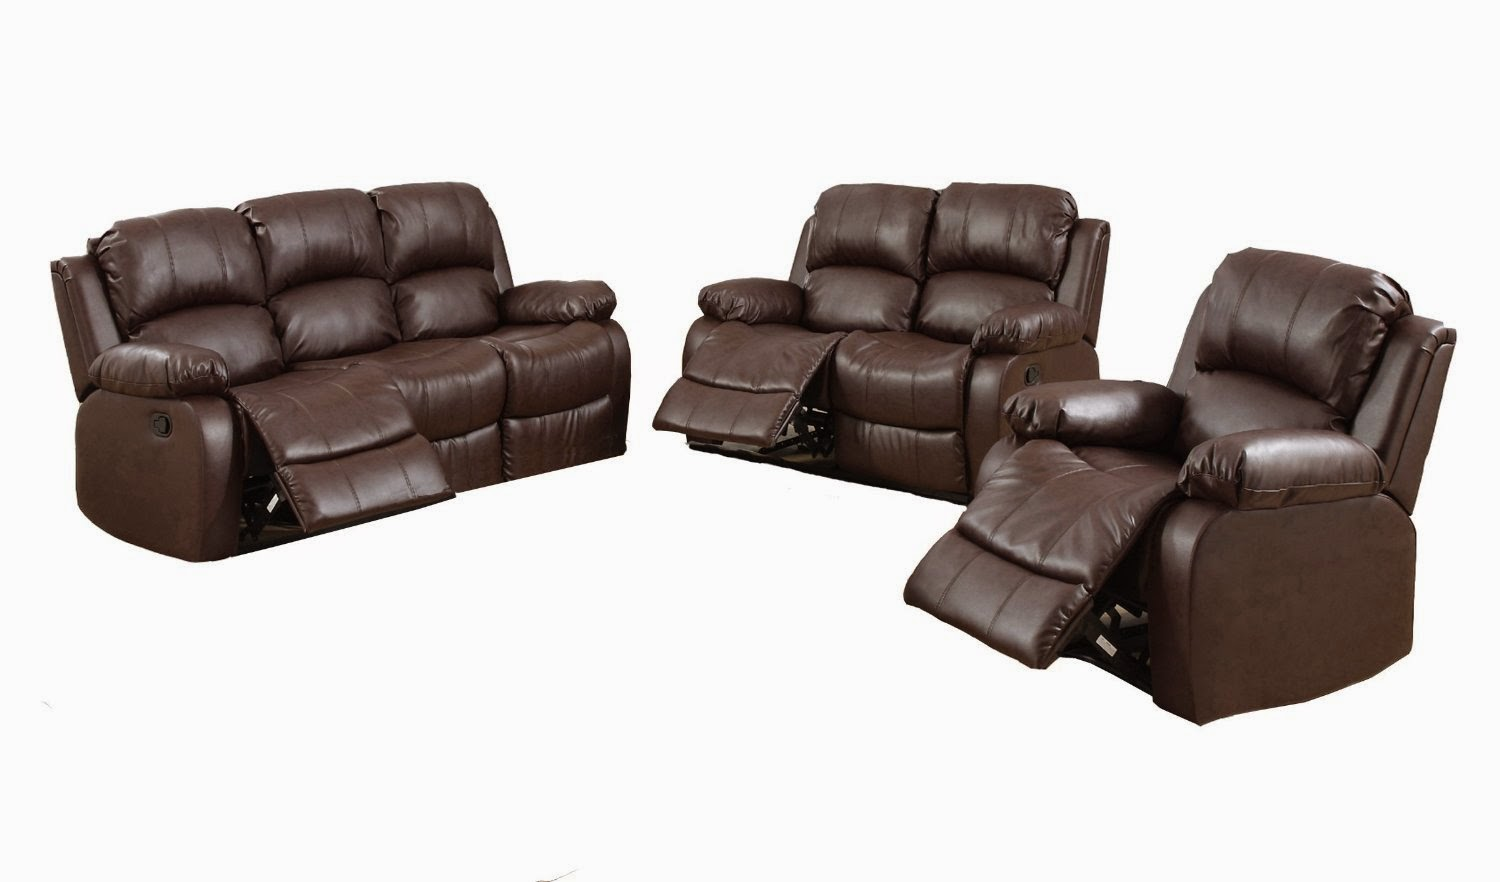 Cheap reclining sofas sale brown reclining sofa set Cheap sofas and loveseats sets